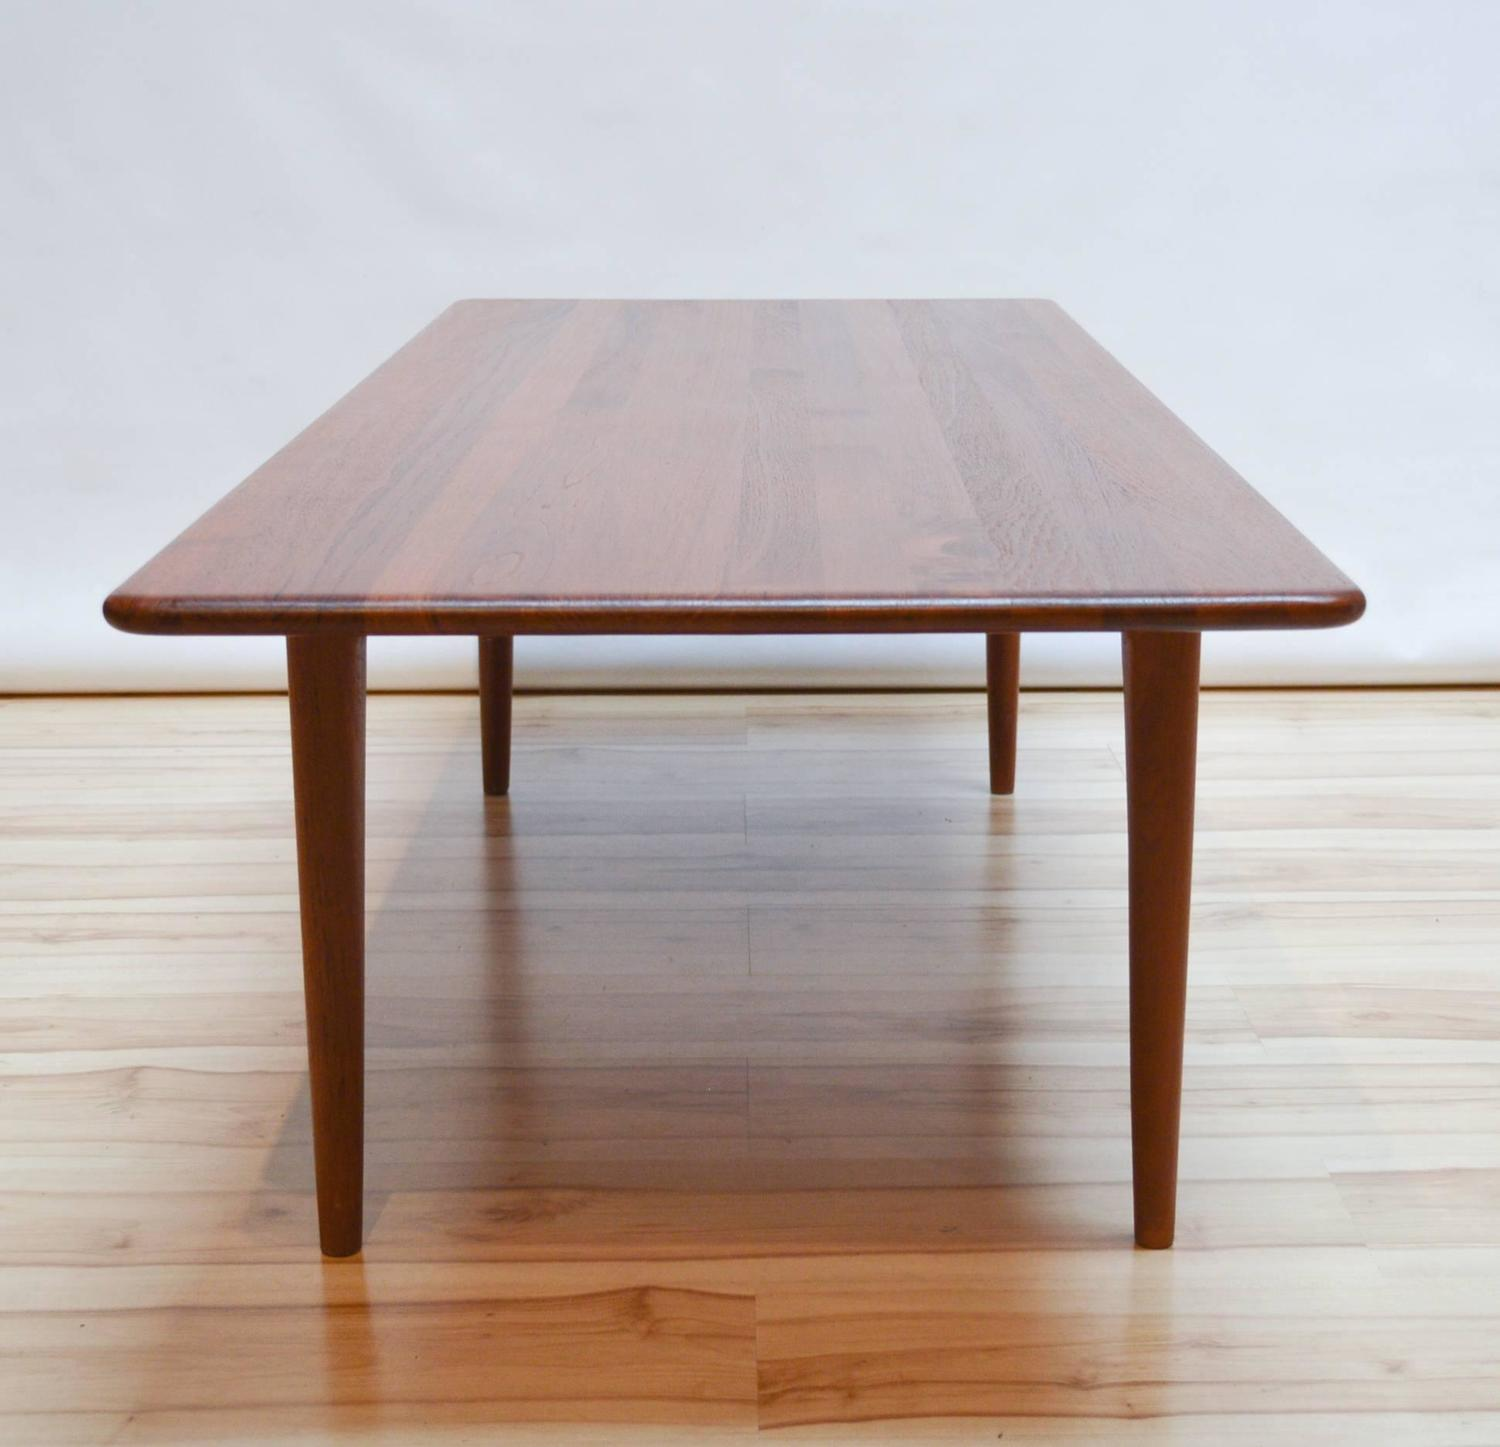 Mikael laursen solid teak coffee table attributed to hans wegner at 1stdibs Solid teak coffee table